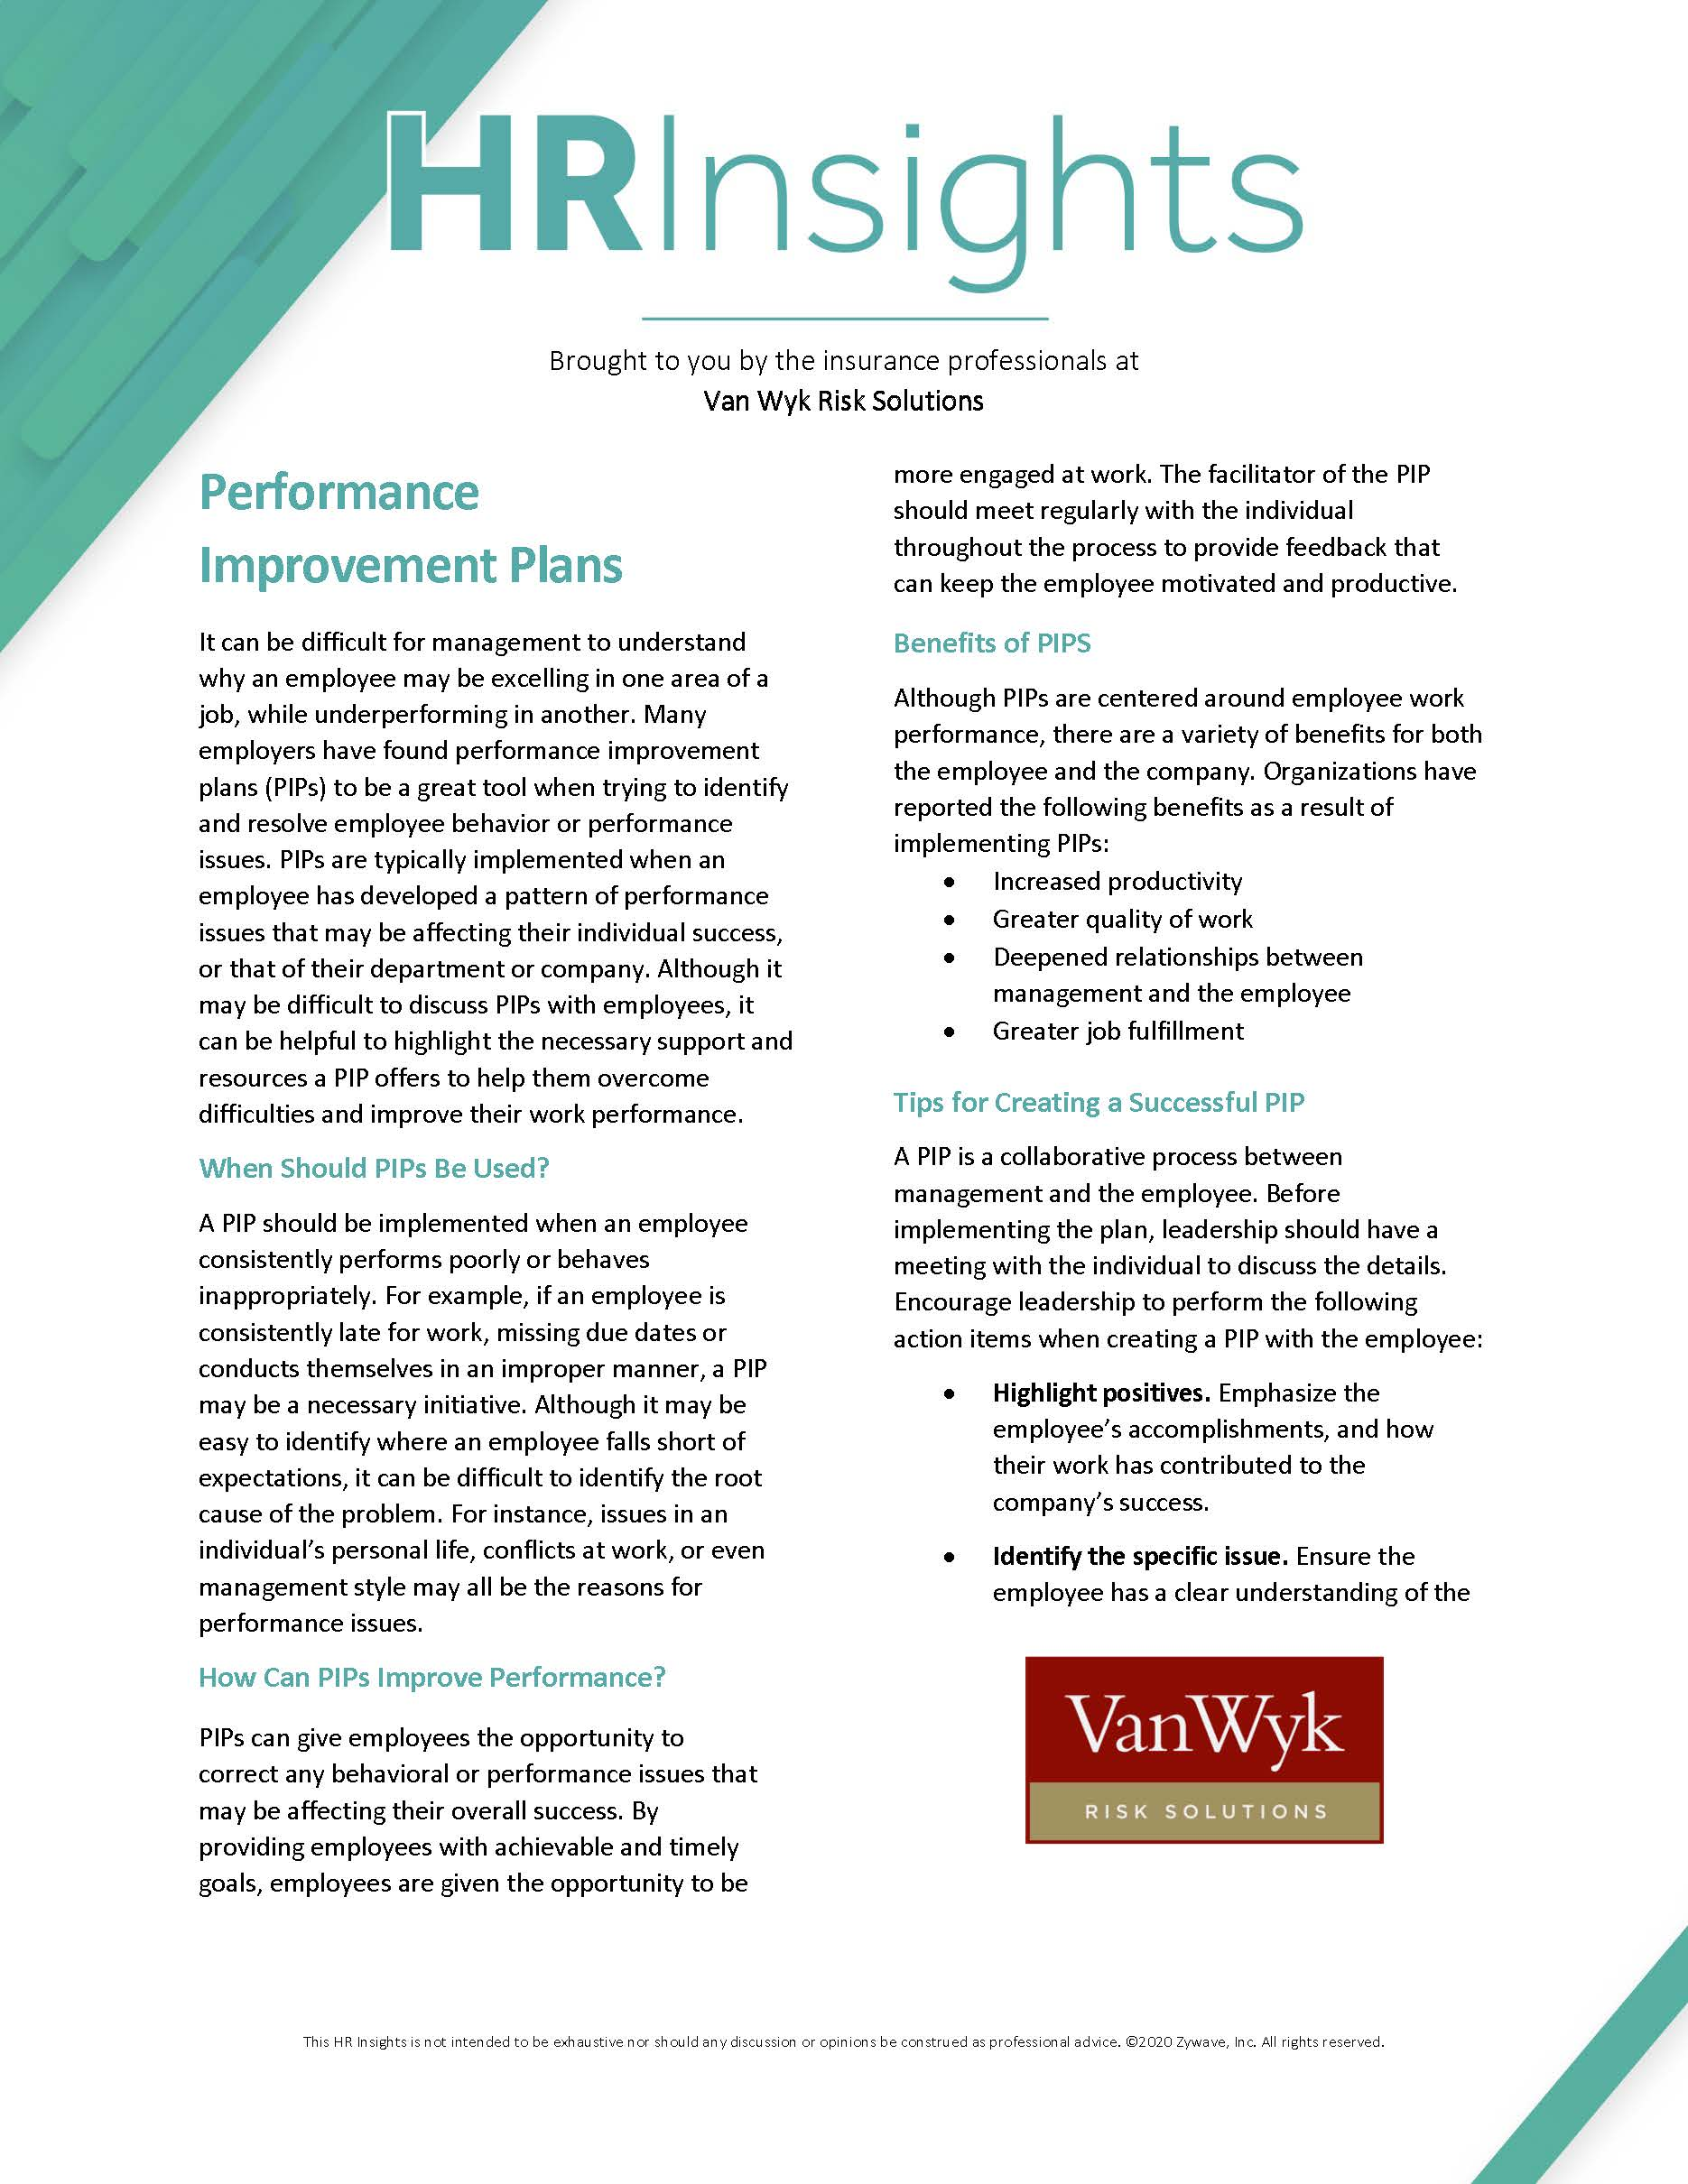 HR Insights - Performance Improvement Plans